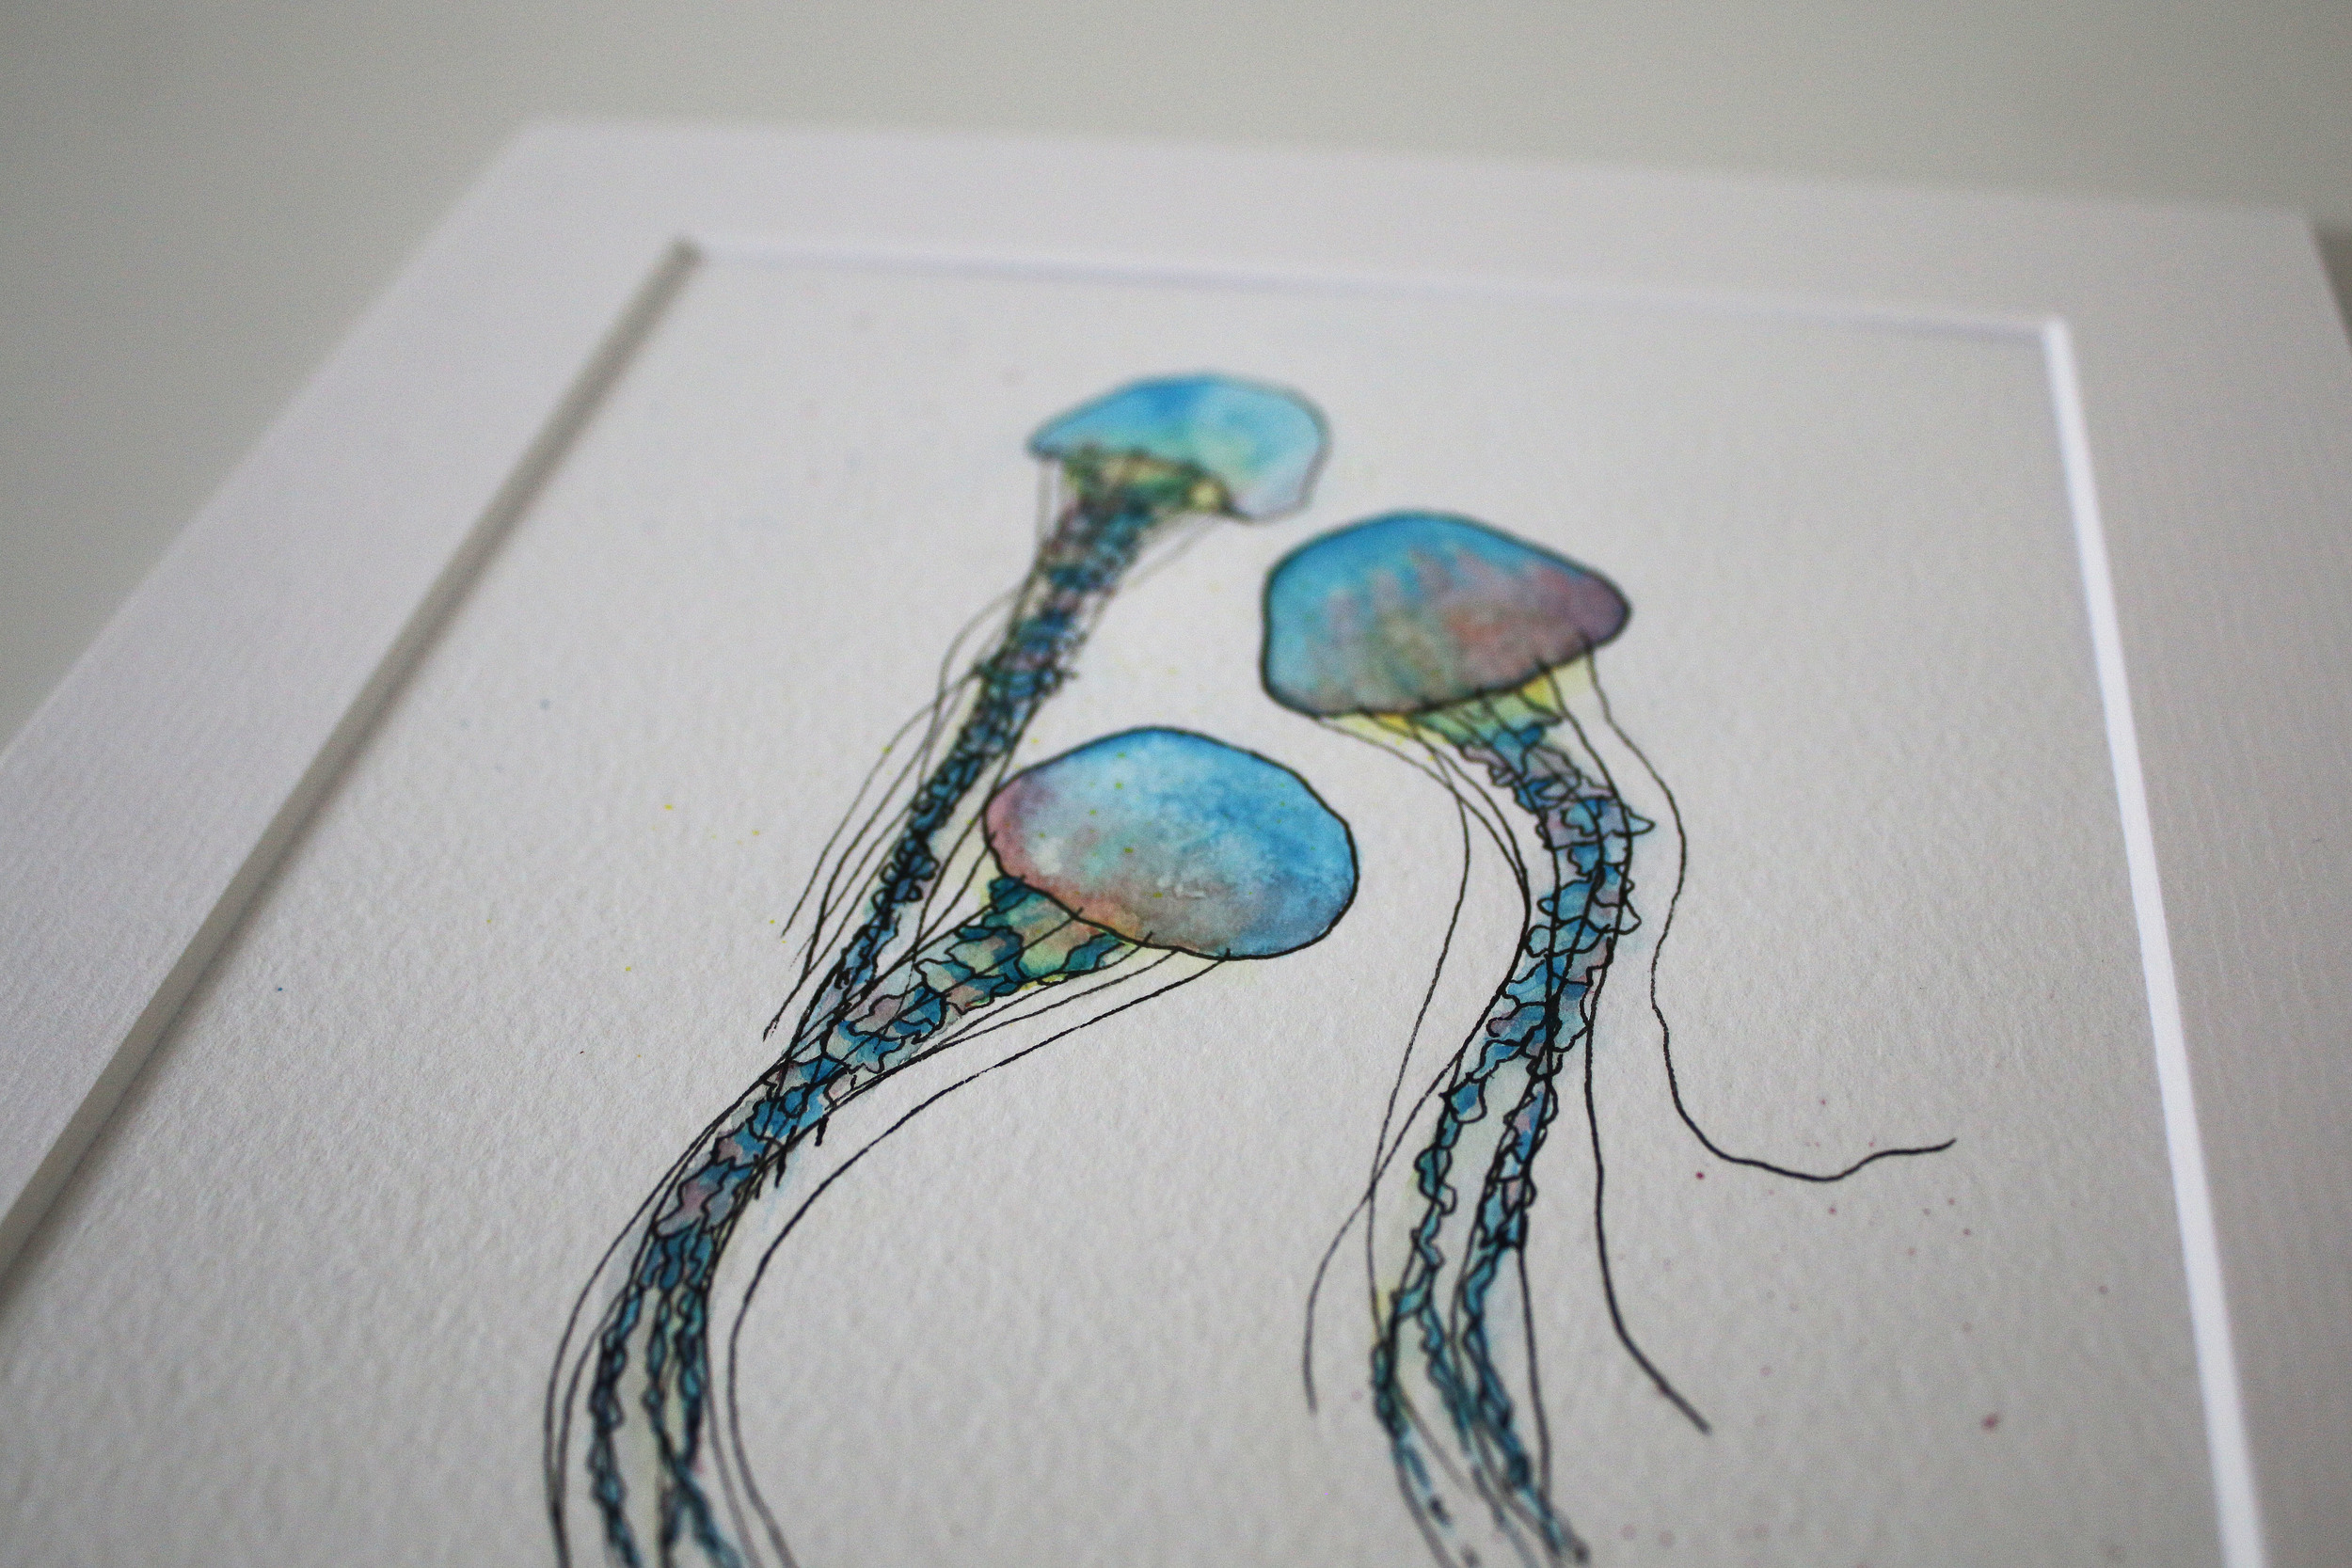 Jelly fish 3.jpg